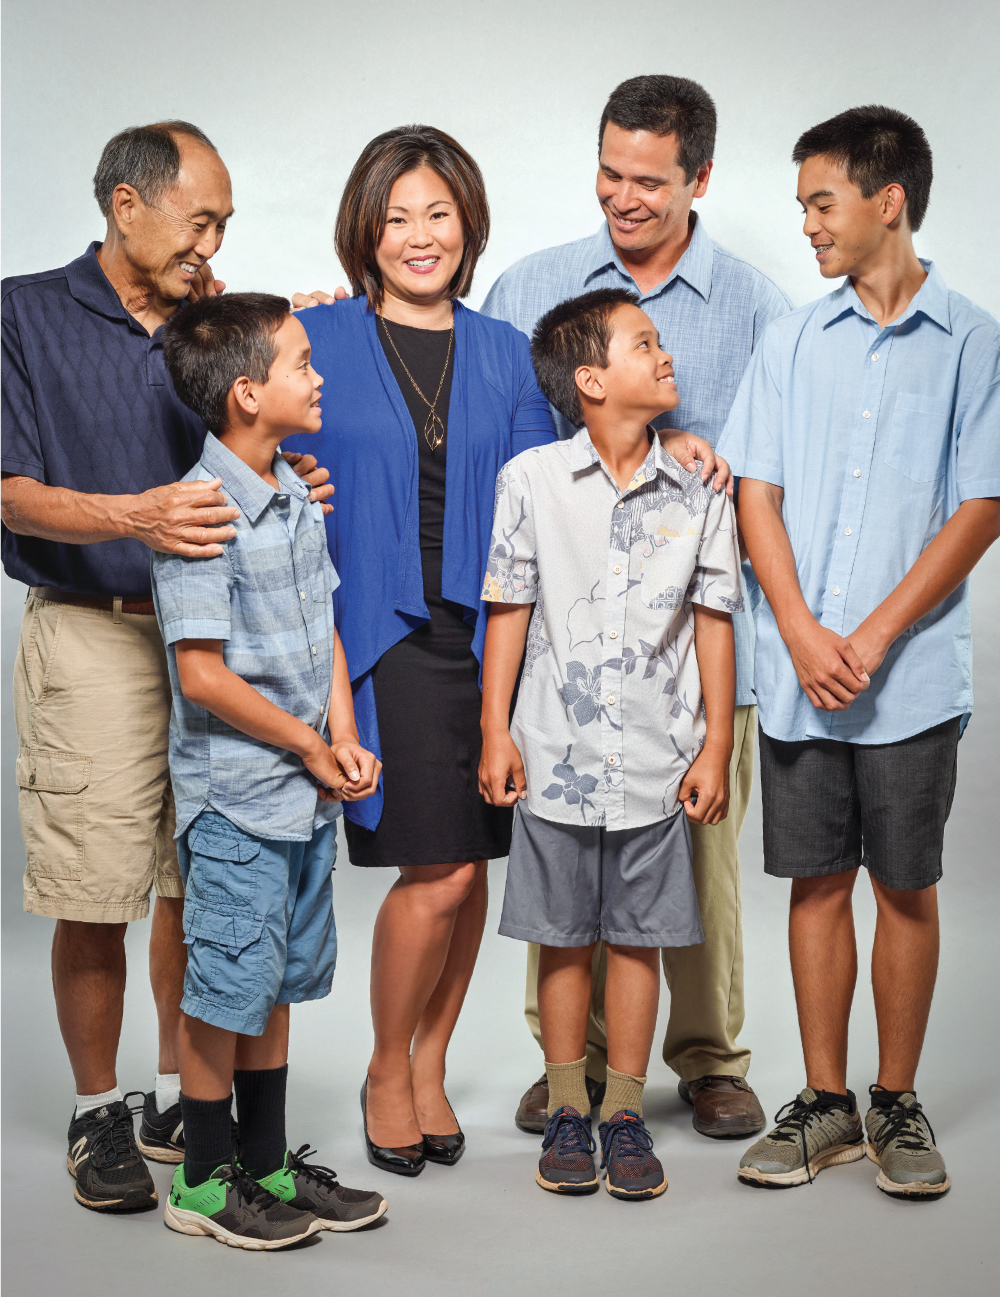 Grandfather Randy Kim and, from left, sons Eli, Simon (both 10) and Sam (14), and husband, Edwin Sniffen. Not pictured is grandmother Beverly Kim.